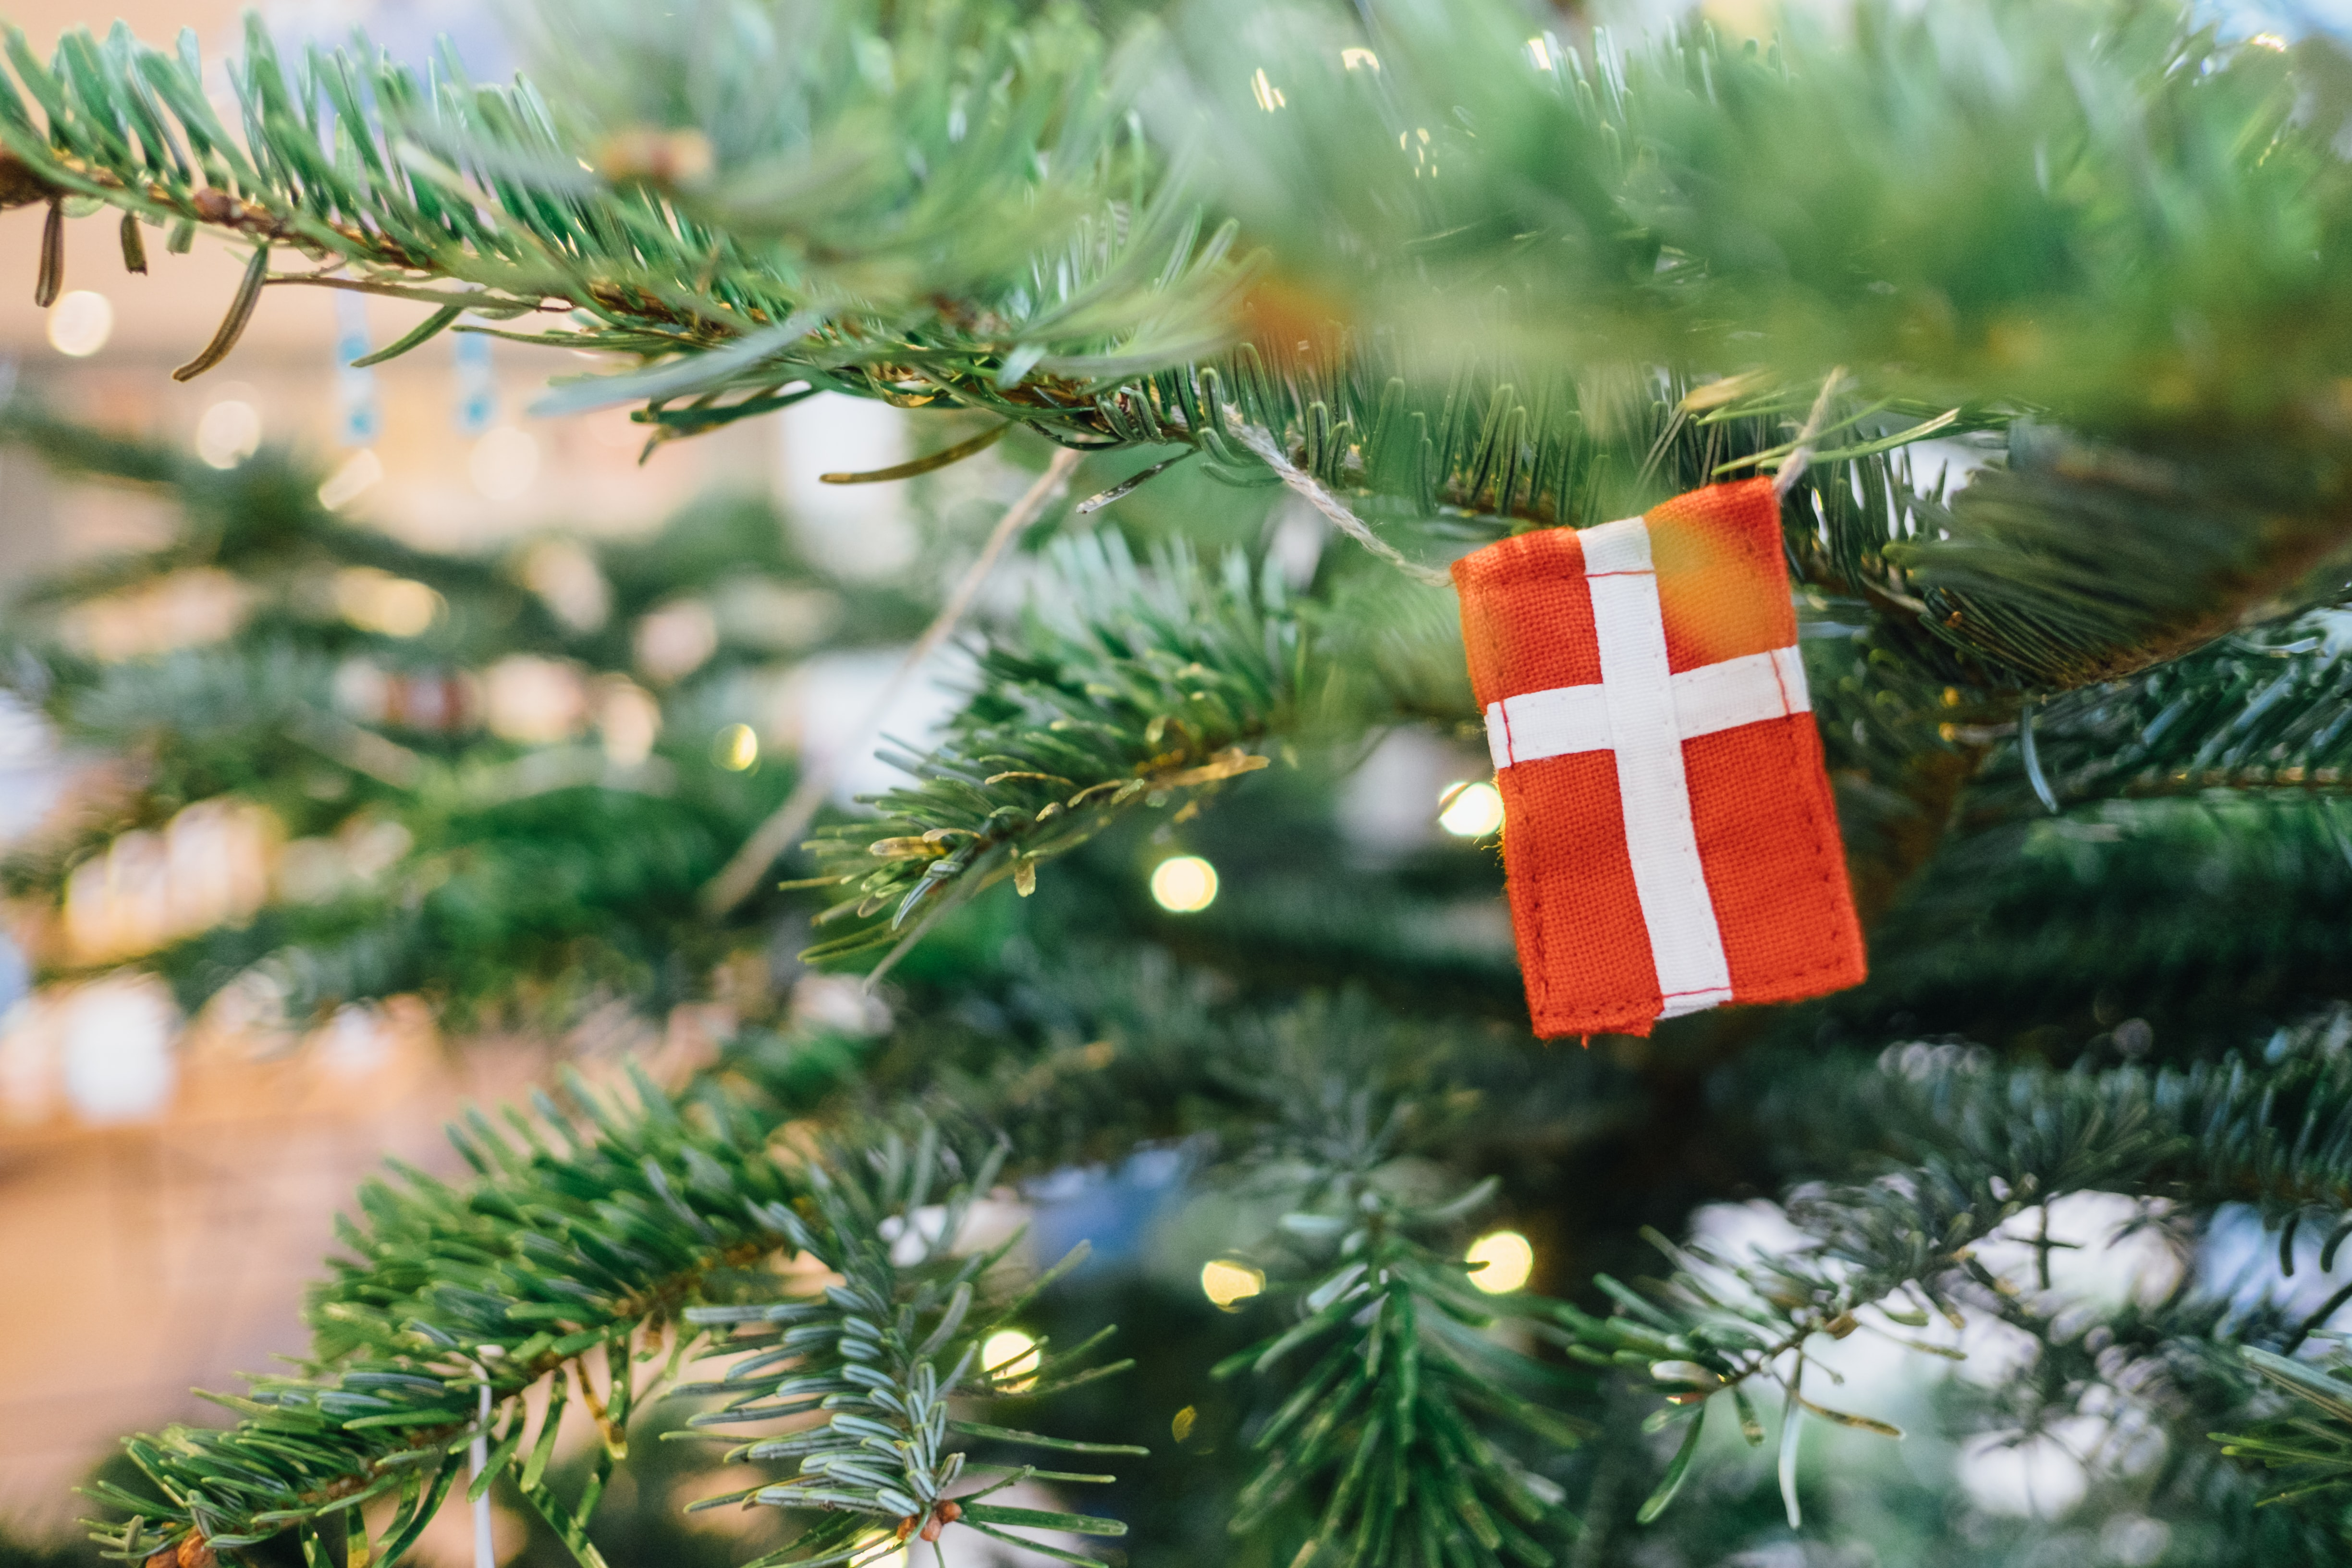 Travel to Denmark with your tree decorations!